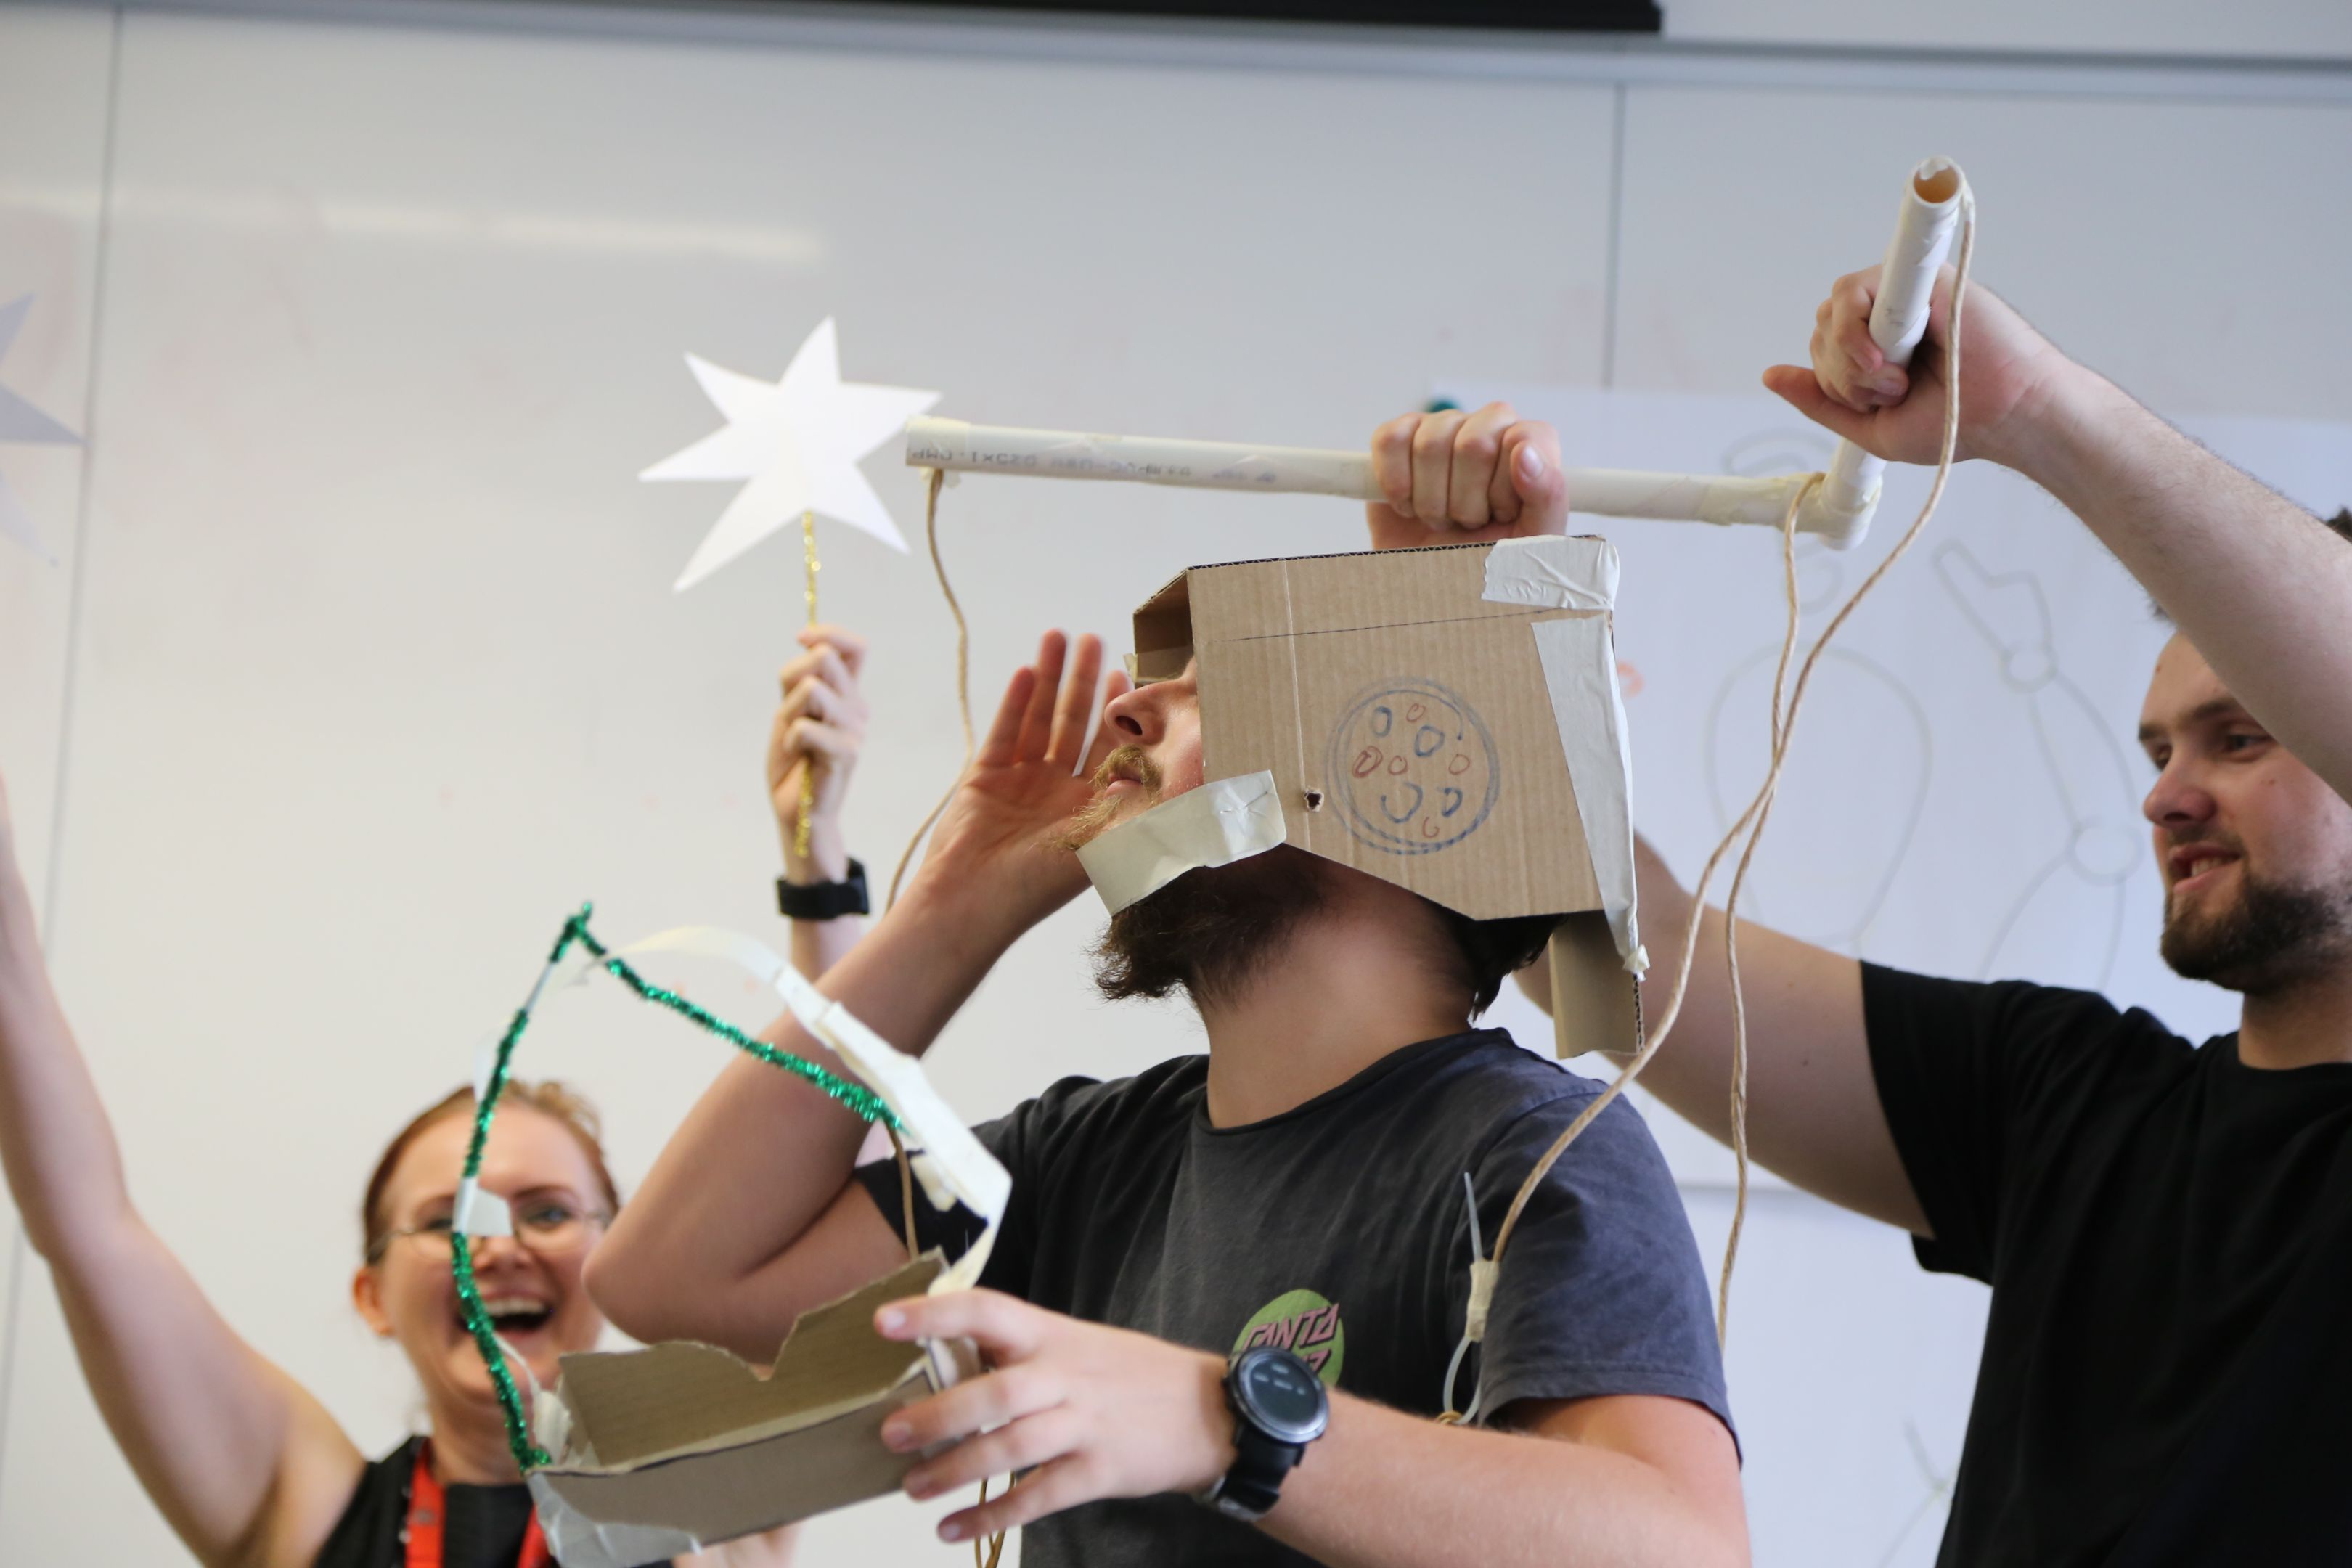 A group of students playing with cardboard.